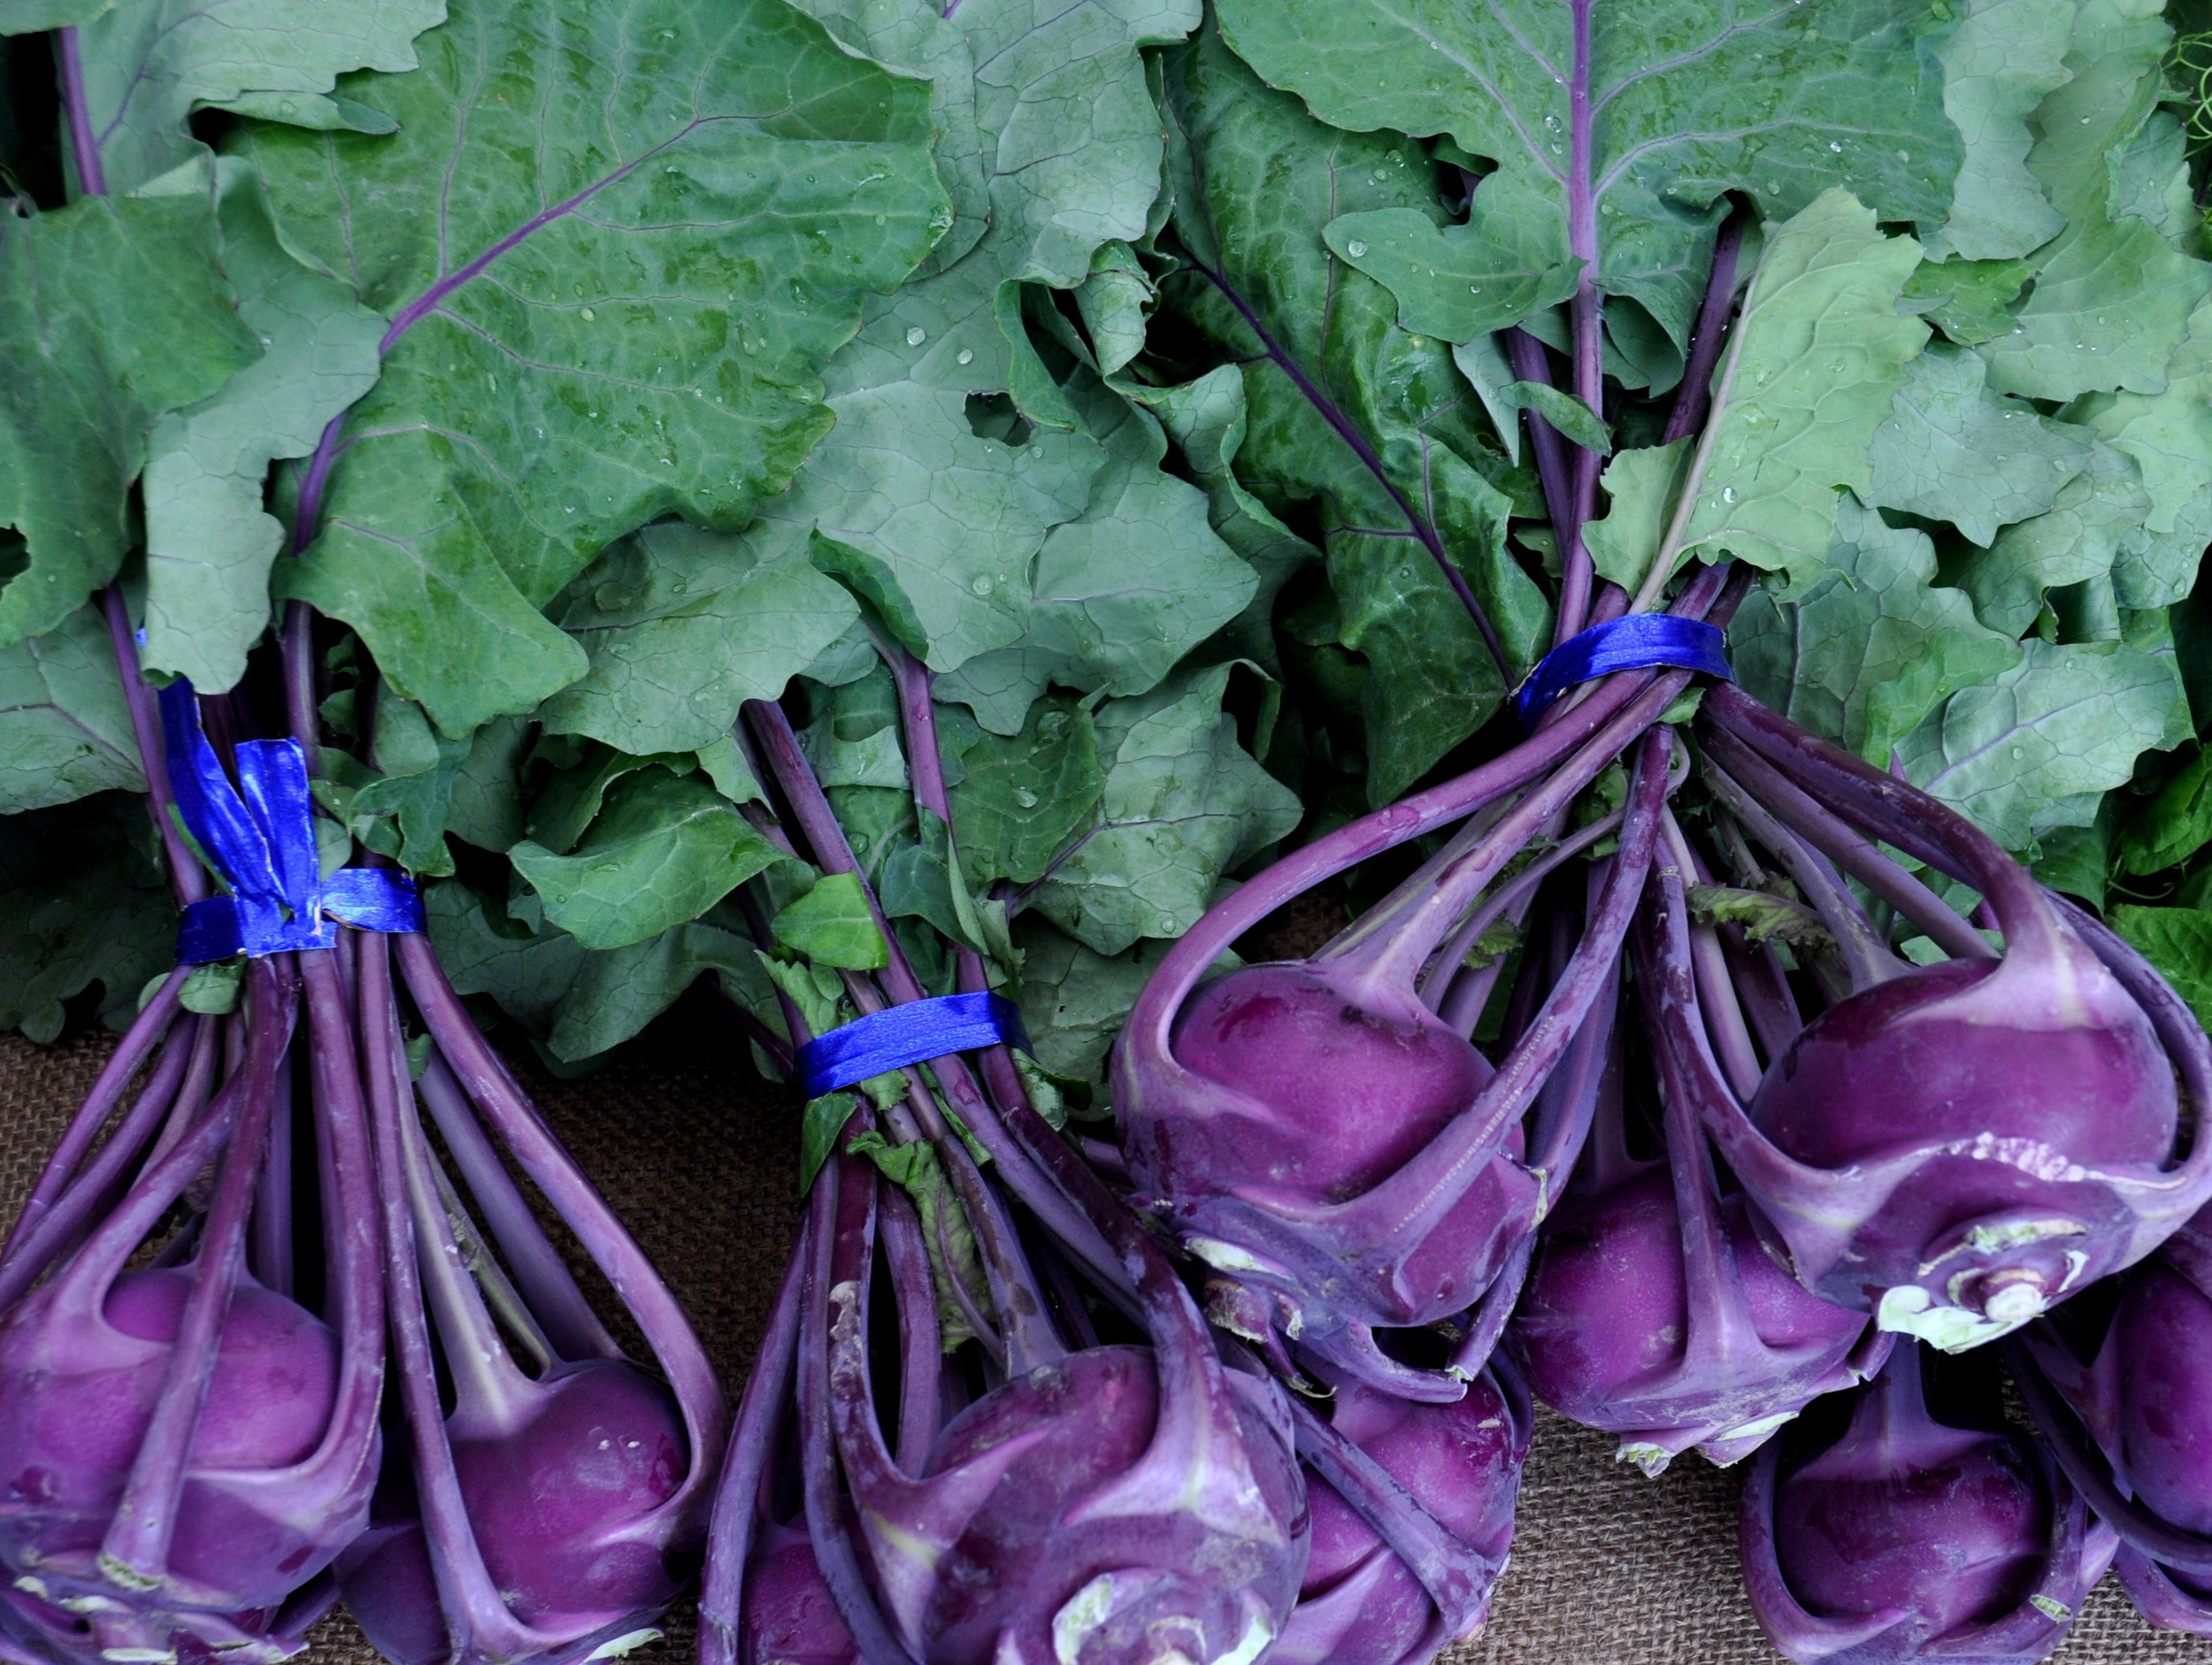 Purple kohlrabi from One Leaf Farm. Photo copyright 2014 by Zachary D. Lyons.